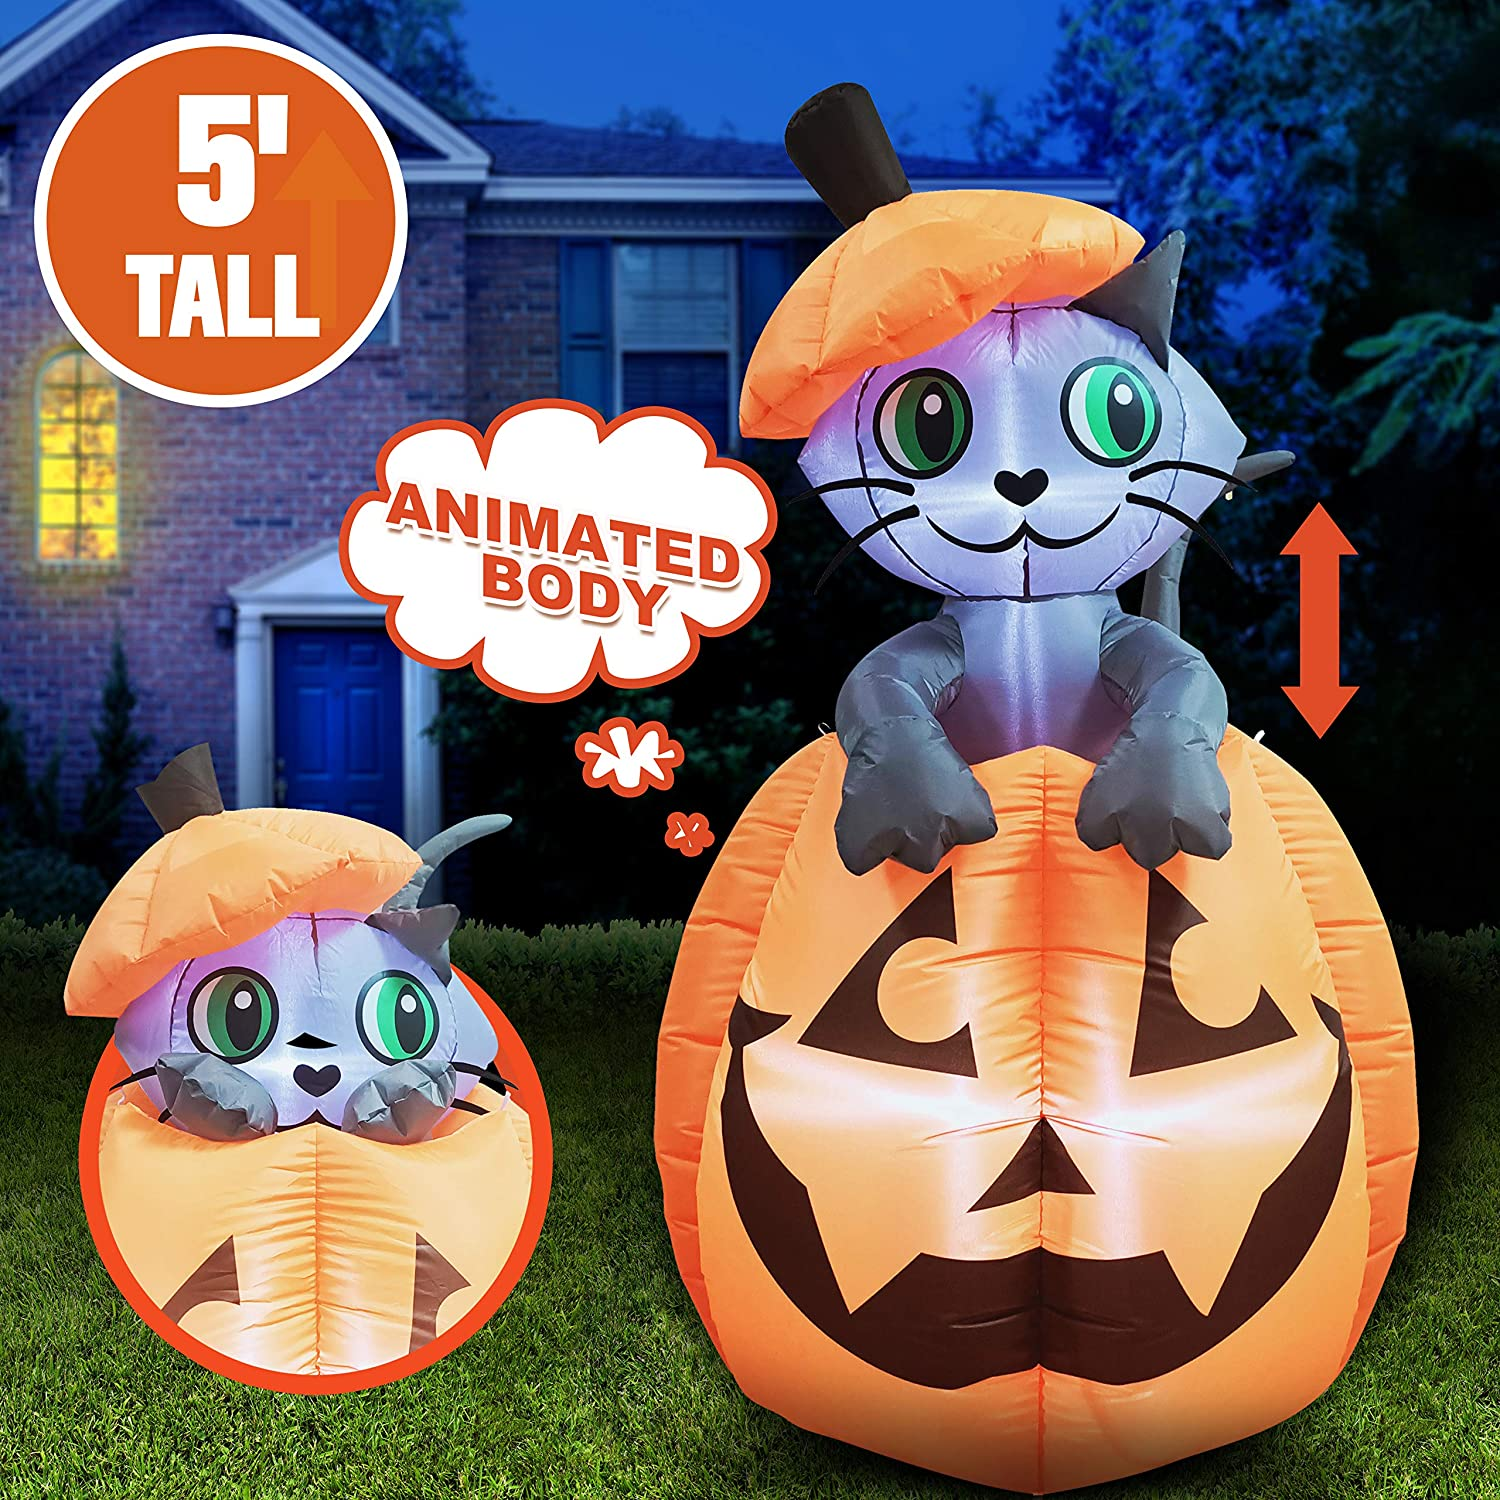 5 Ft Tall Halloween Inflatable Animated Kitty Cat On Pumpkin Inflatable Yard Decoration With Build In Leds Blow Up Inflatables For Halloween Party Indoor Outdoor Yard Garden Lawn Decorations Garden Outdoor